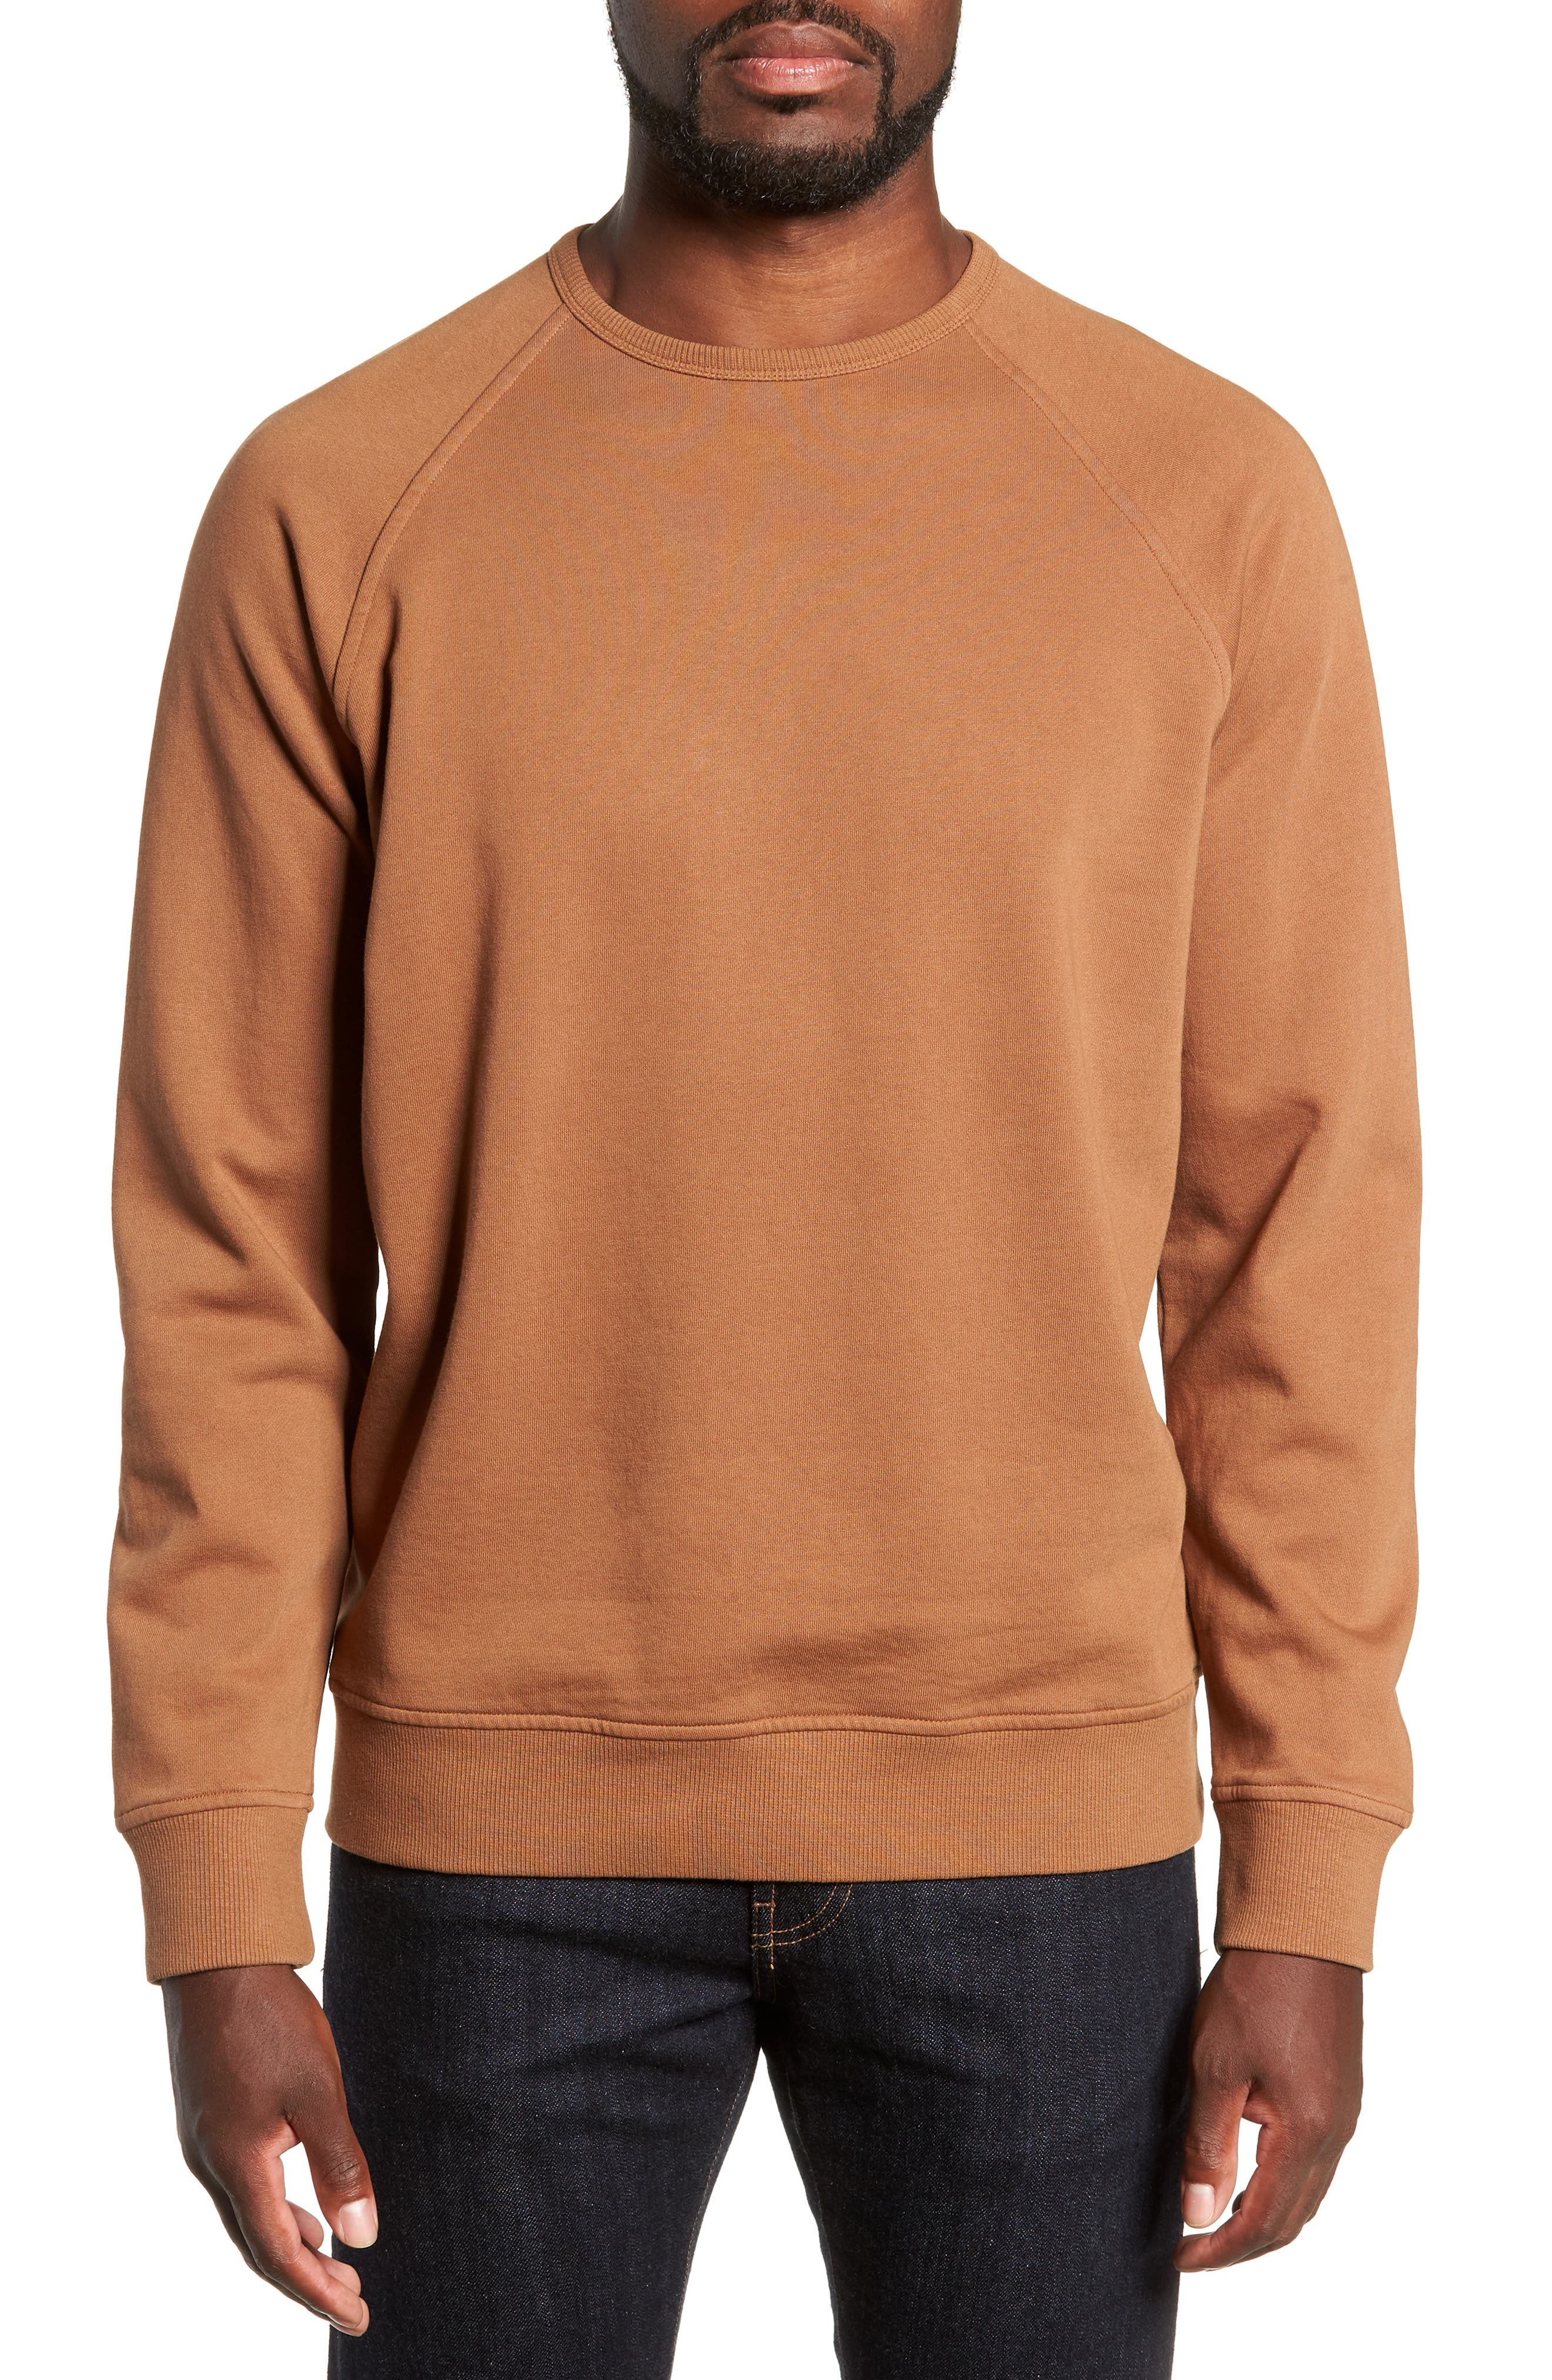 Schrank Regular Fit Cotton Sweatshirt,                         Main,                         color, 200